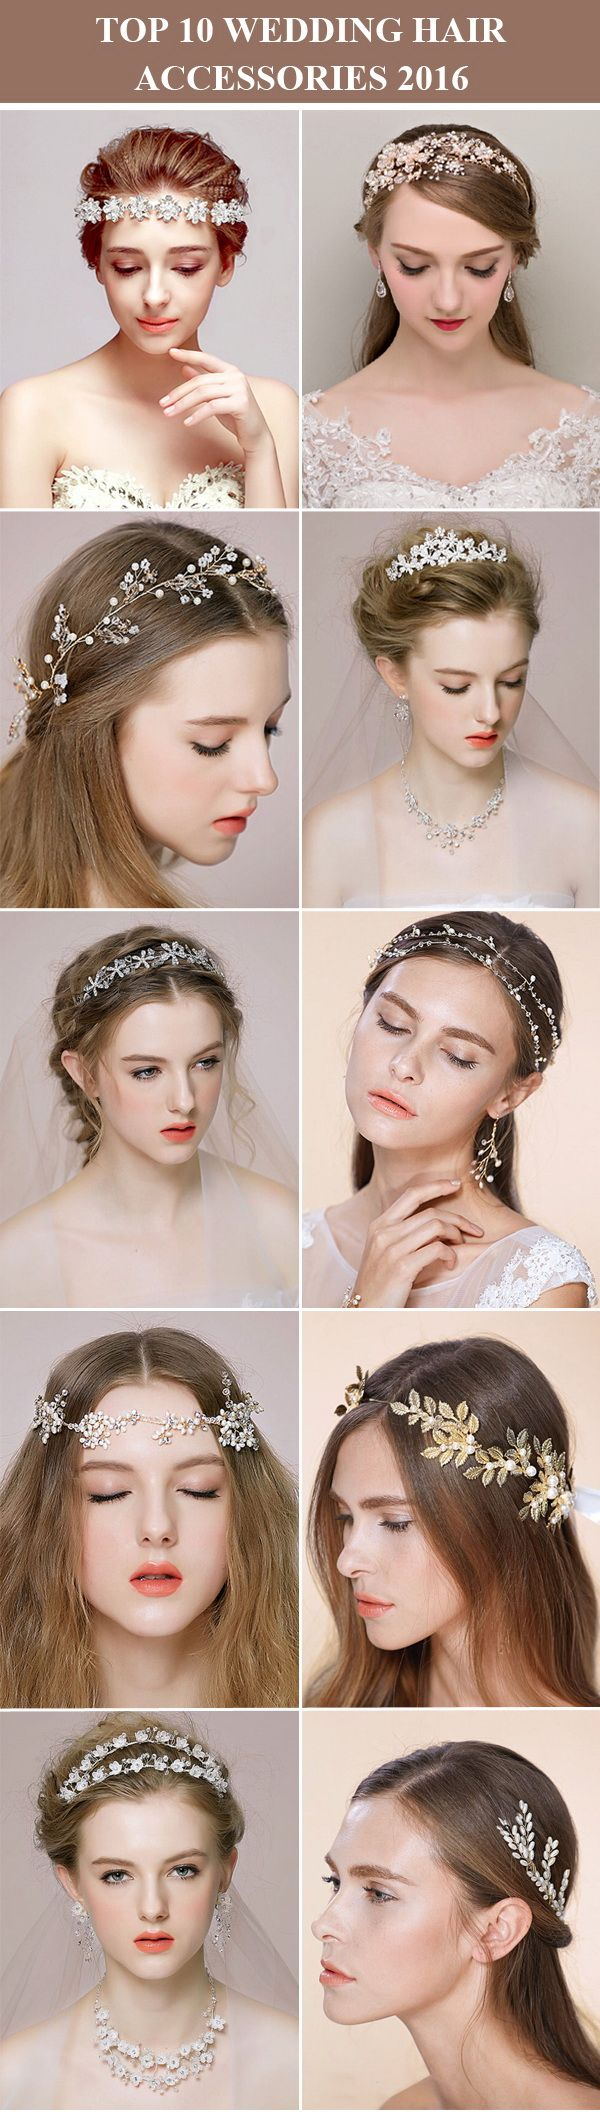 top 10 wedding hair accessories, wedding hairpieces and wedding headbands for 2016 from @tullechantilly